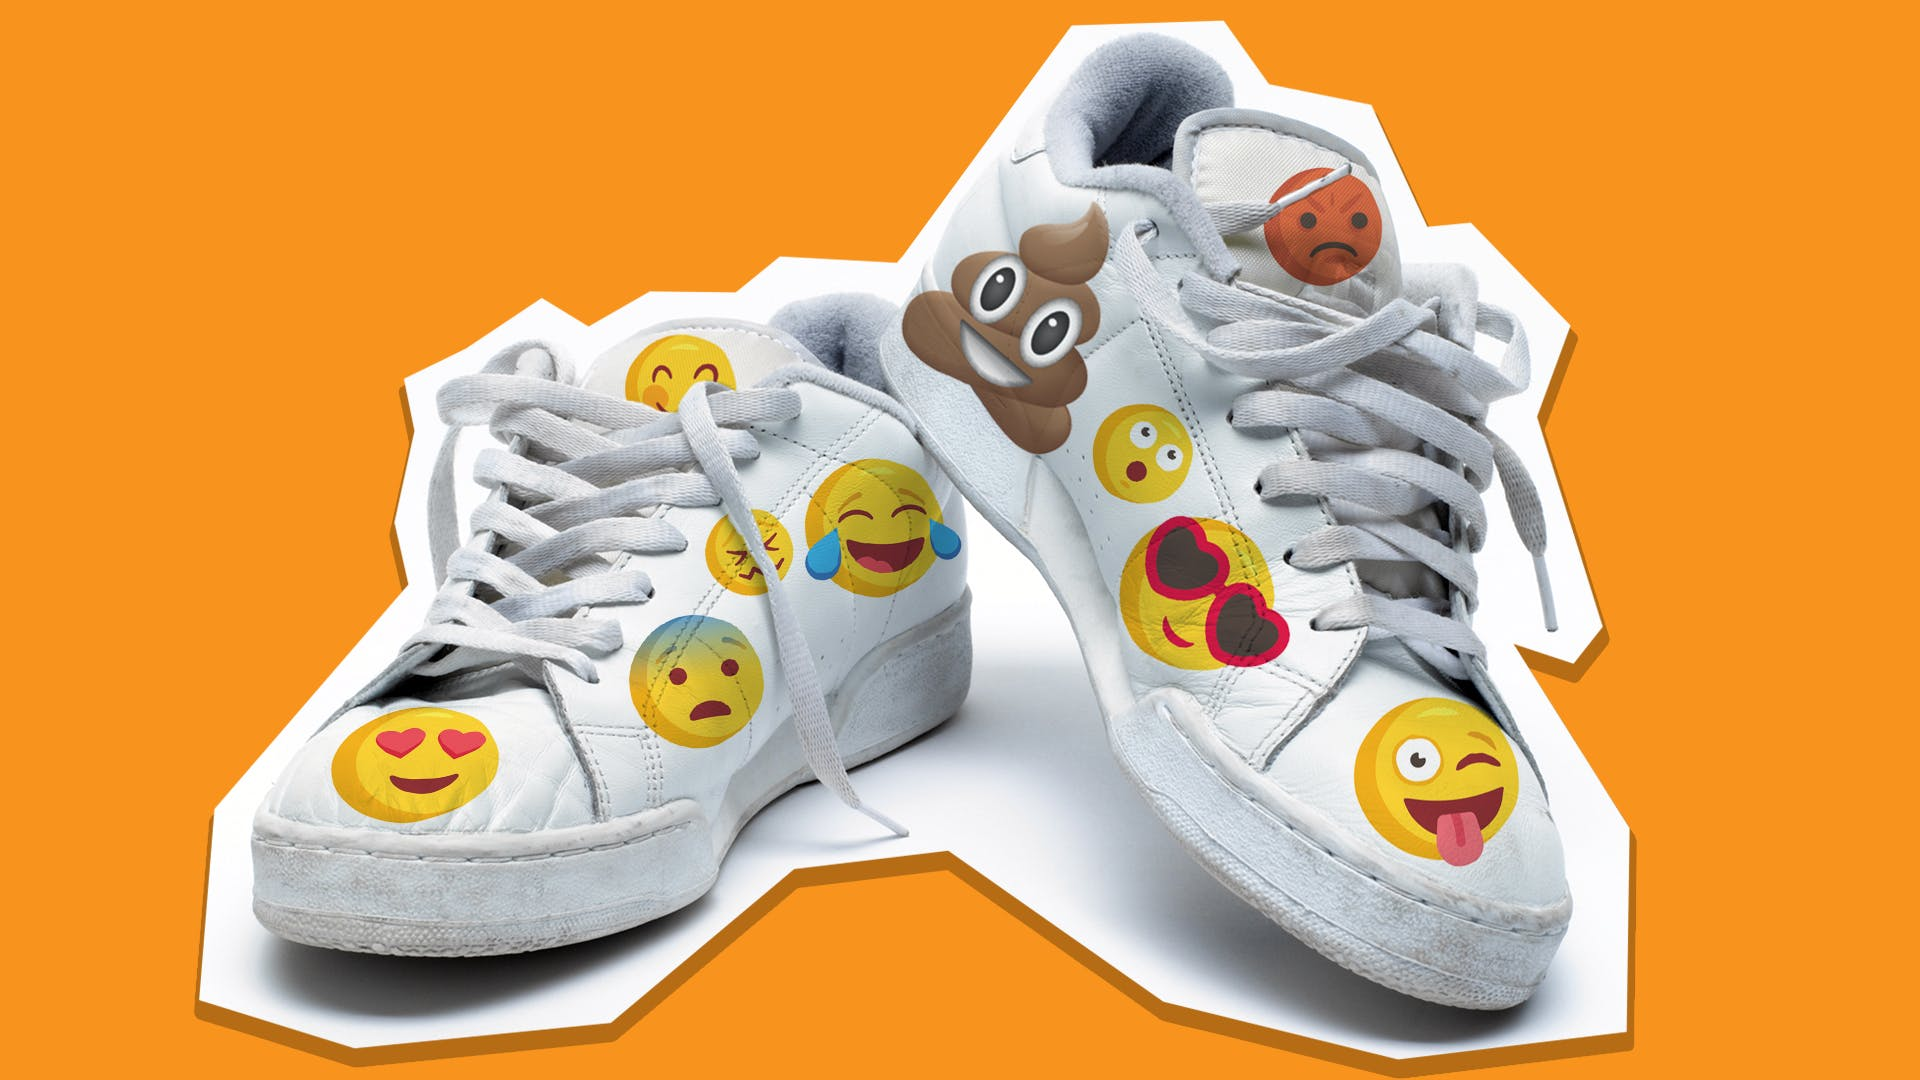 Shoes covered in emojis